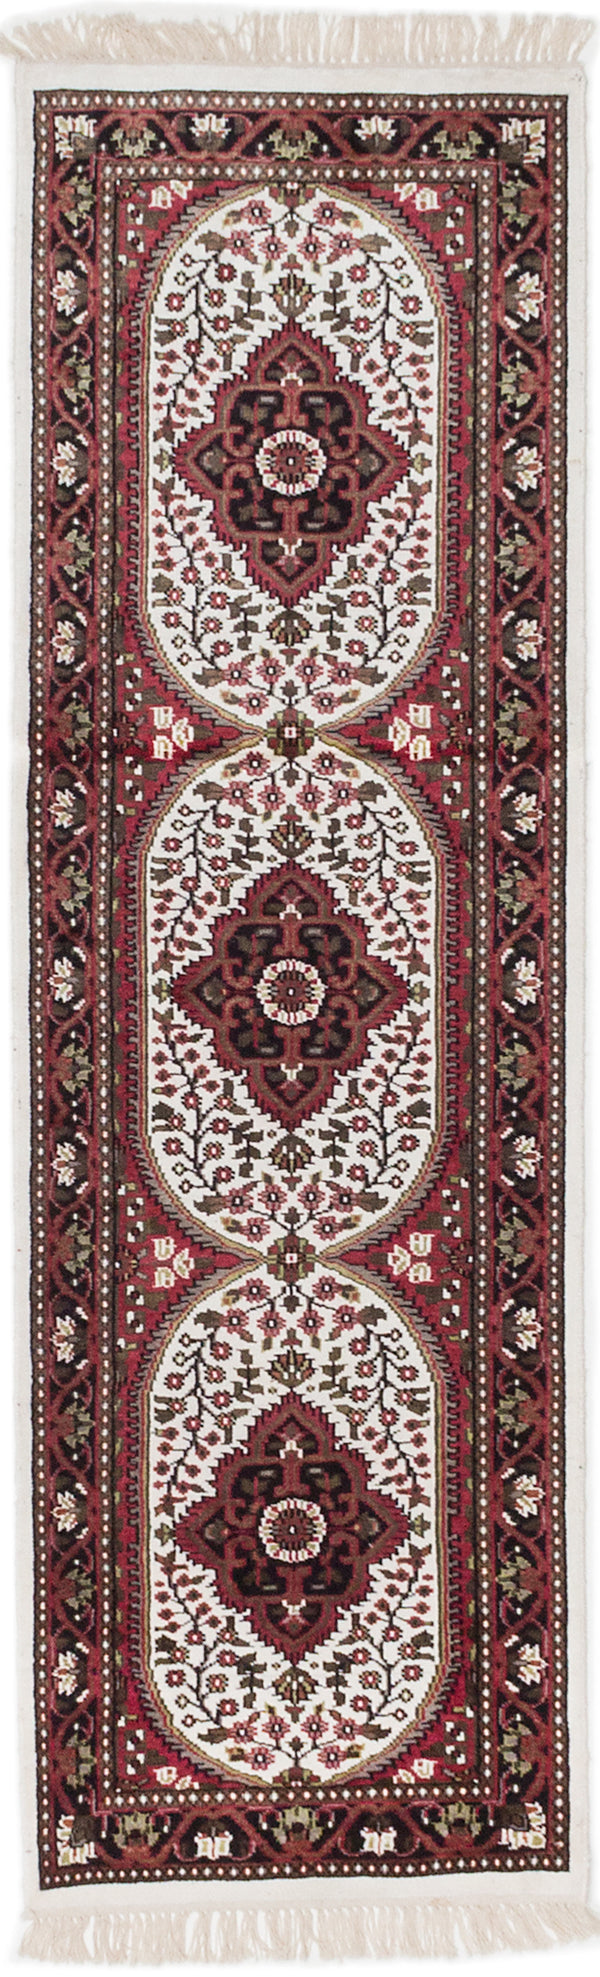 Hand-knotted Indian Traditional Kashmir Runner rug  White 2 x 6.6